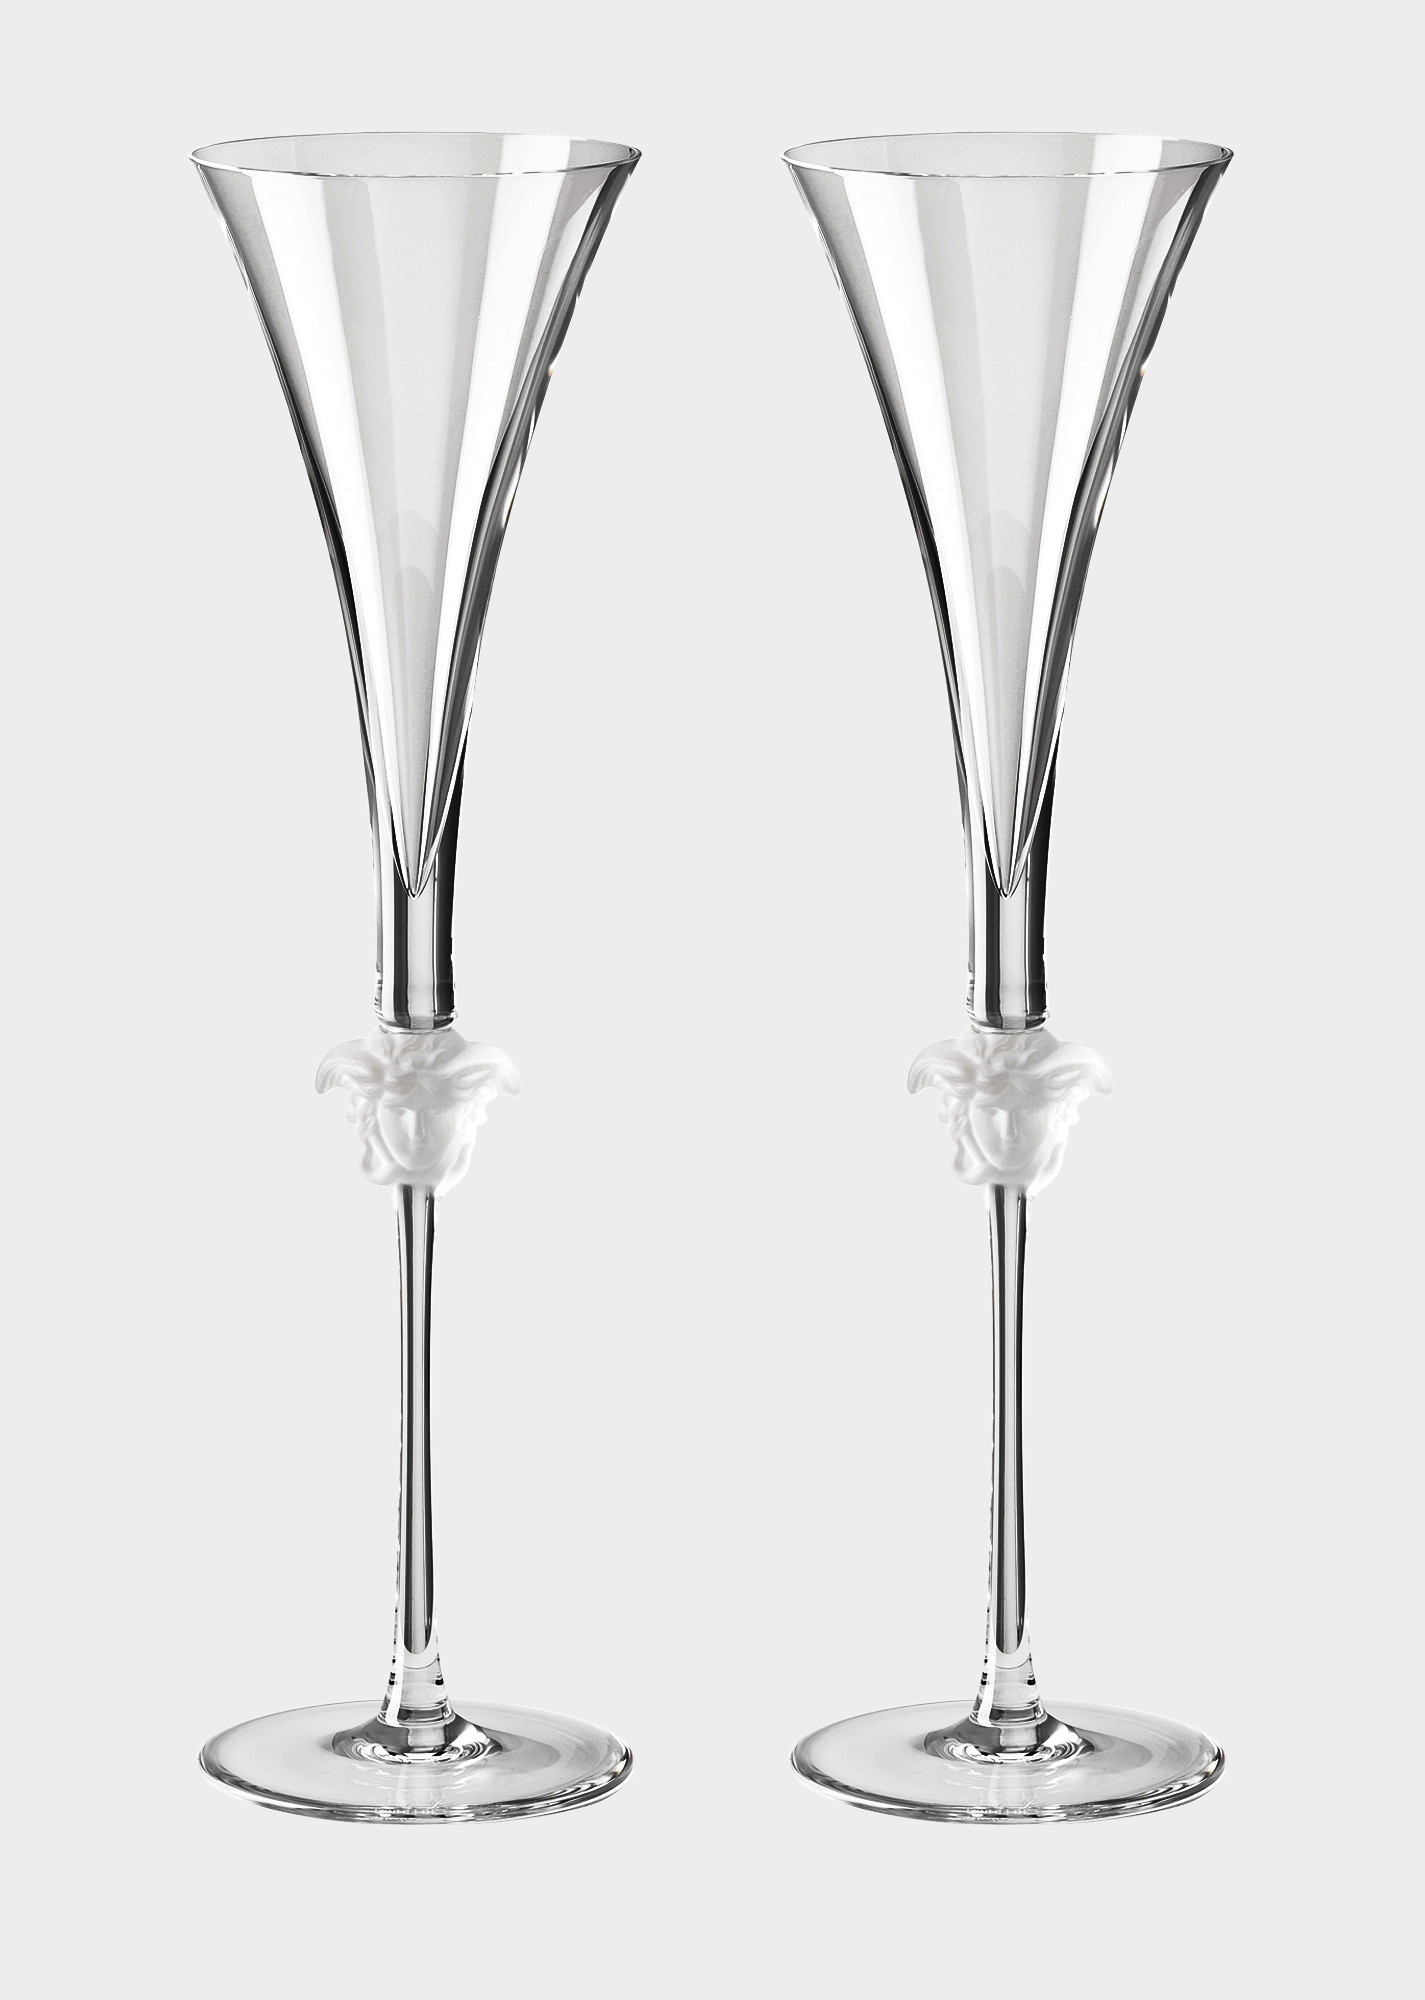 Champagne Glass Vases wholesale Of Versace Home Luxury Glass Crystal Official Website Regarding 90 N48804 N110835 N2066 20 Medusalumieregb2champagneflute Glassandcrystal Versace Online Store 1 0